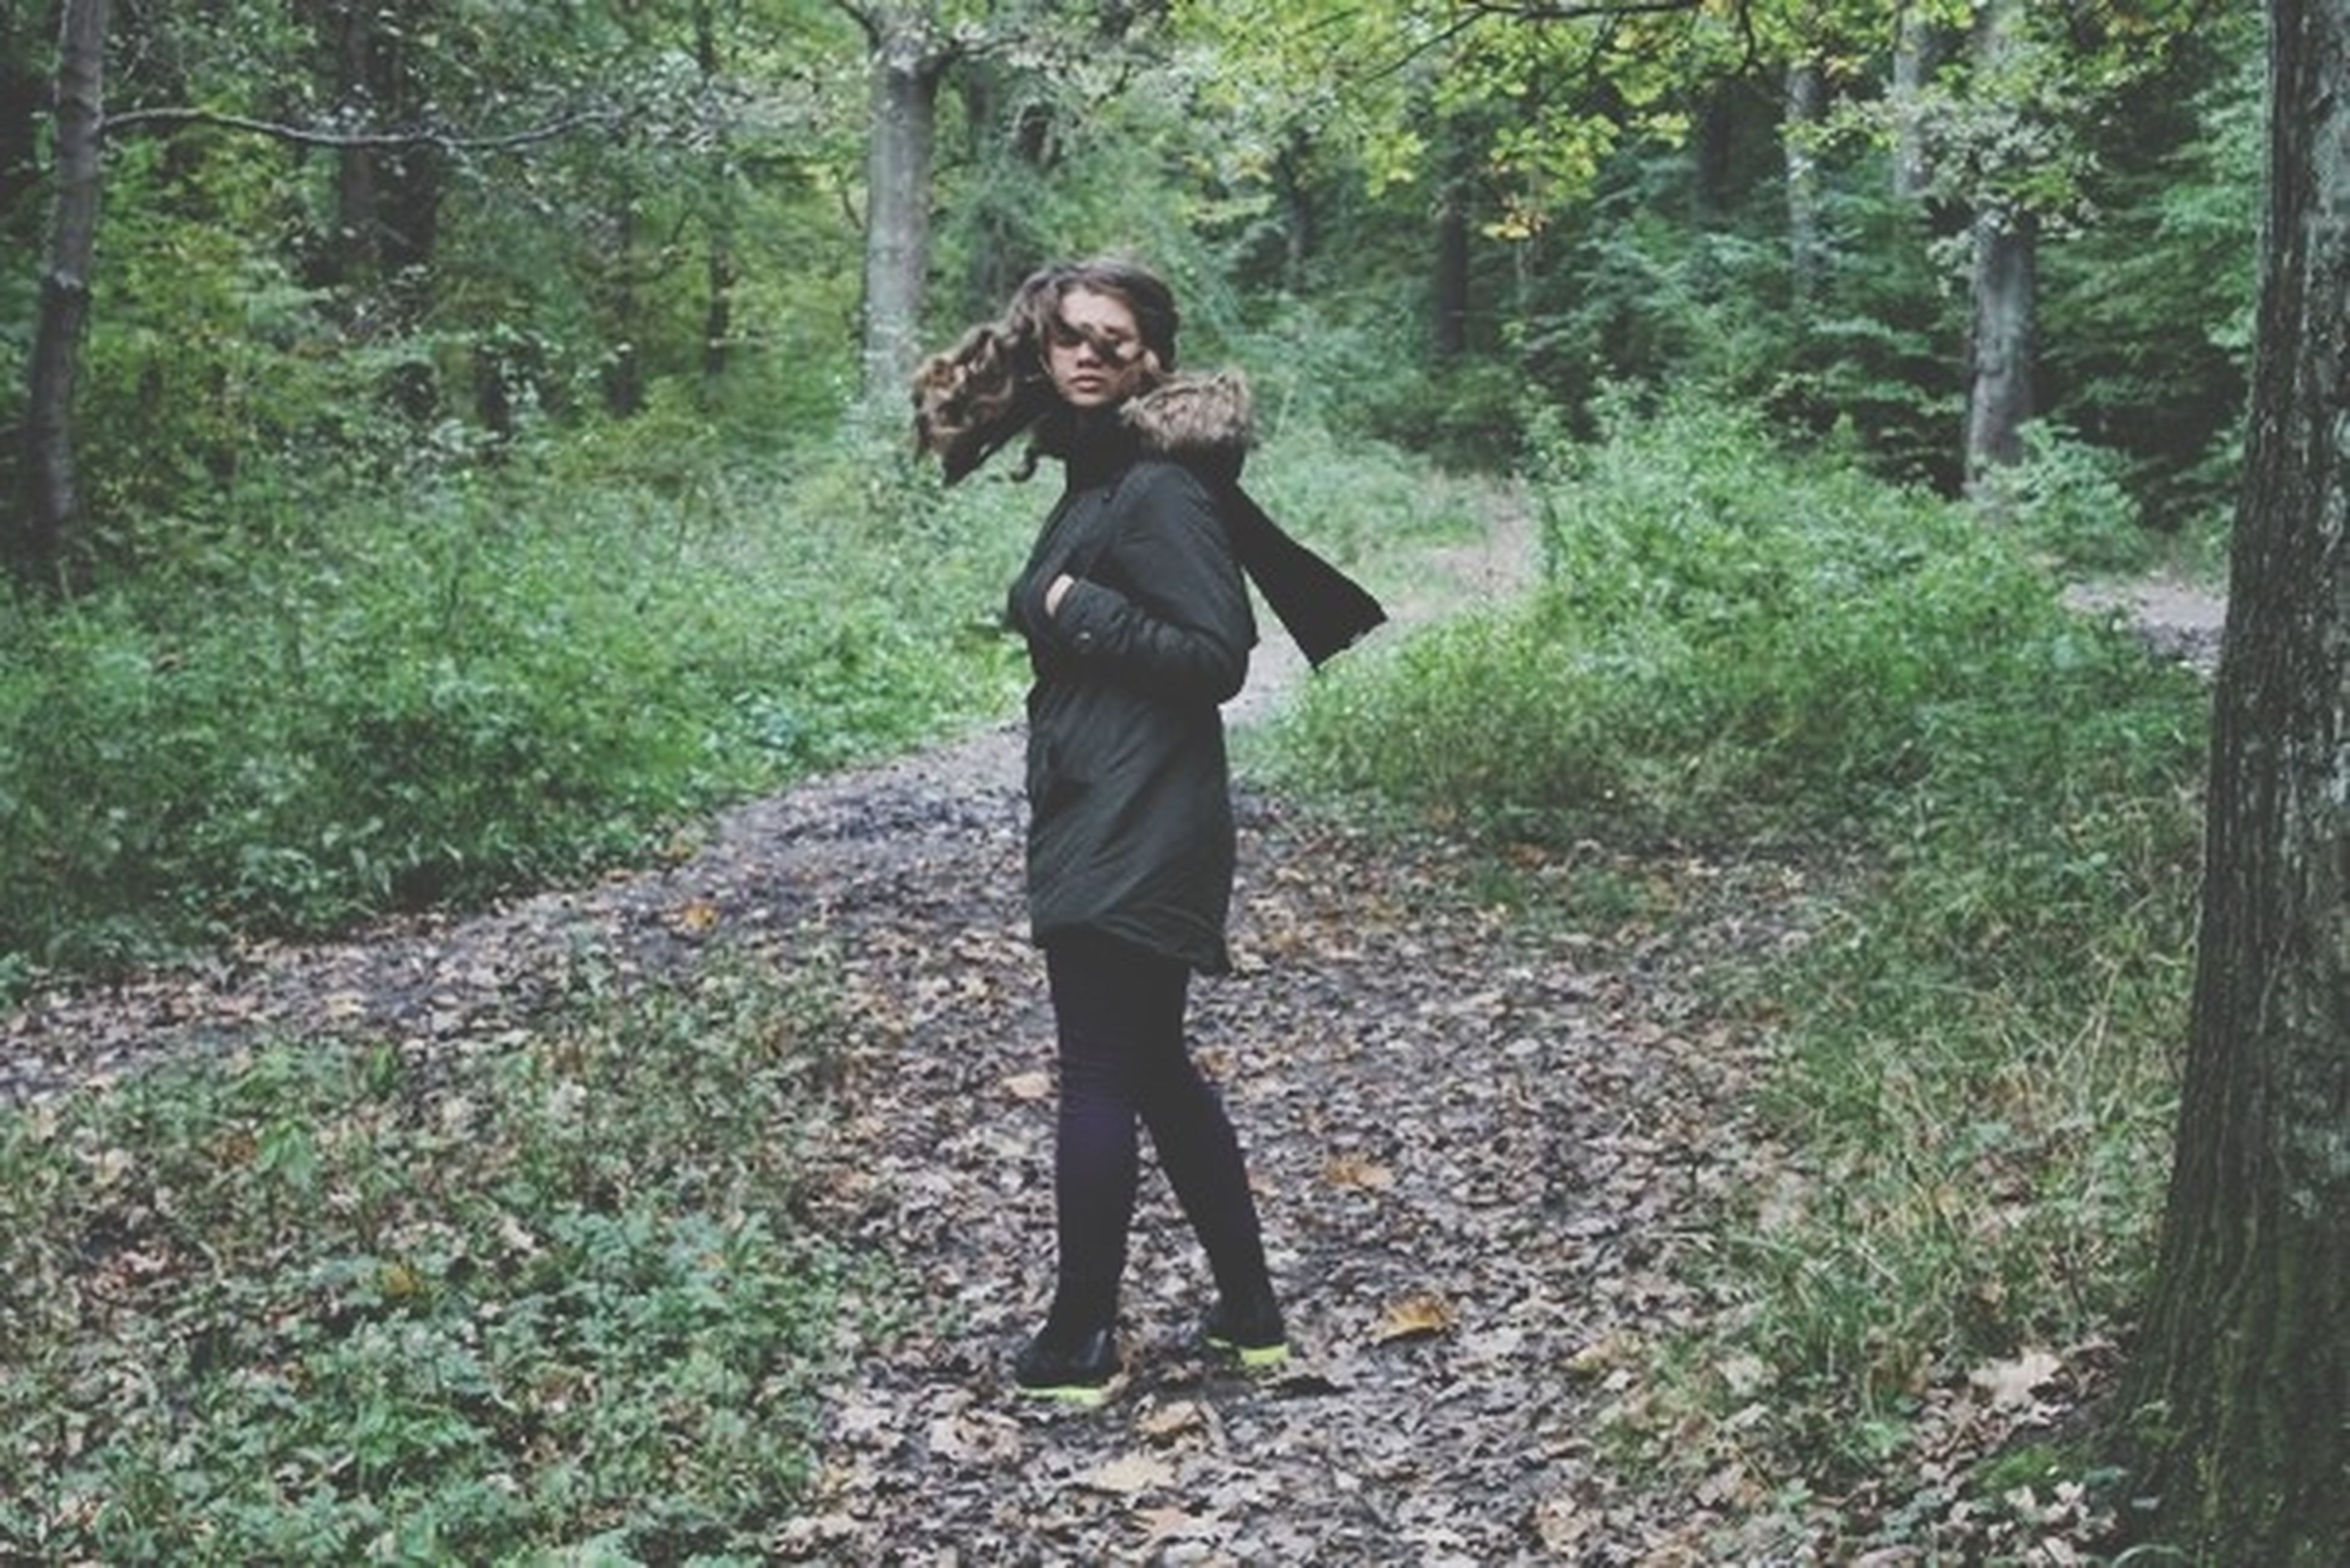 young adult, casual clothing, full length, forest, lifestyles, tree, person, standing, portrait, looking at camera, front view, leisure activity, young women, growth, three quarter length, nature, plant